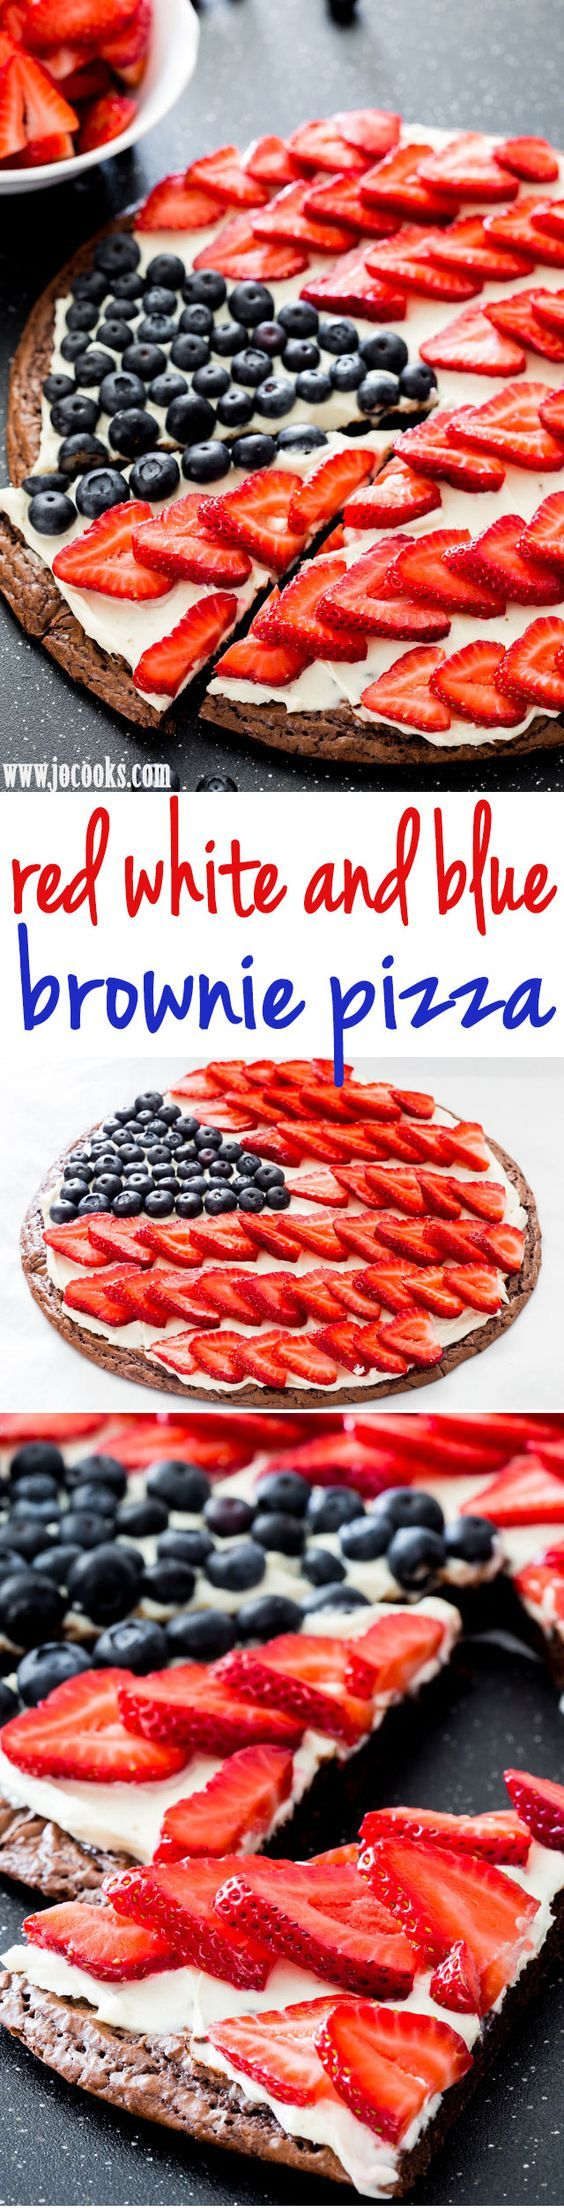 Red White and Blue Brownie Pizza - the perfect dessert for your 4th of July celebration. A delicious brownie crust topped with a cream cheese frosting and loaded with berries! | Jo Cooks